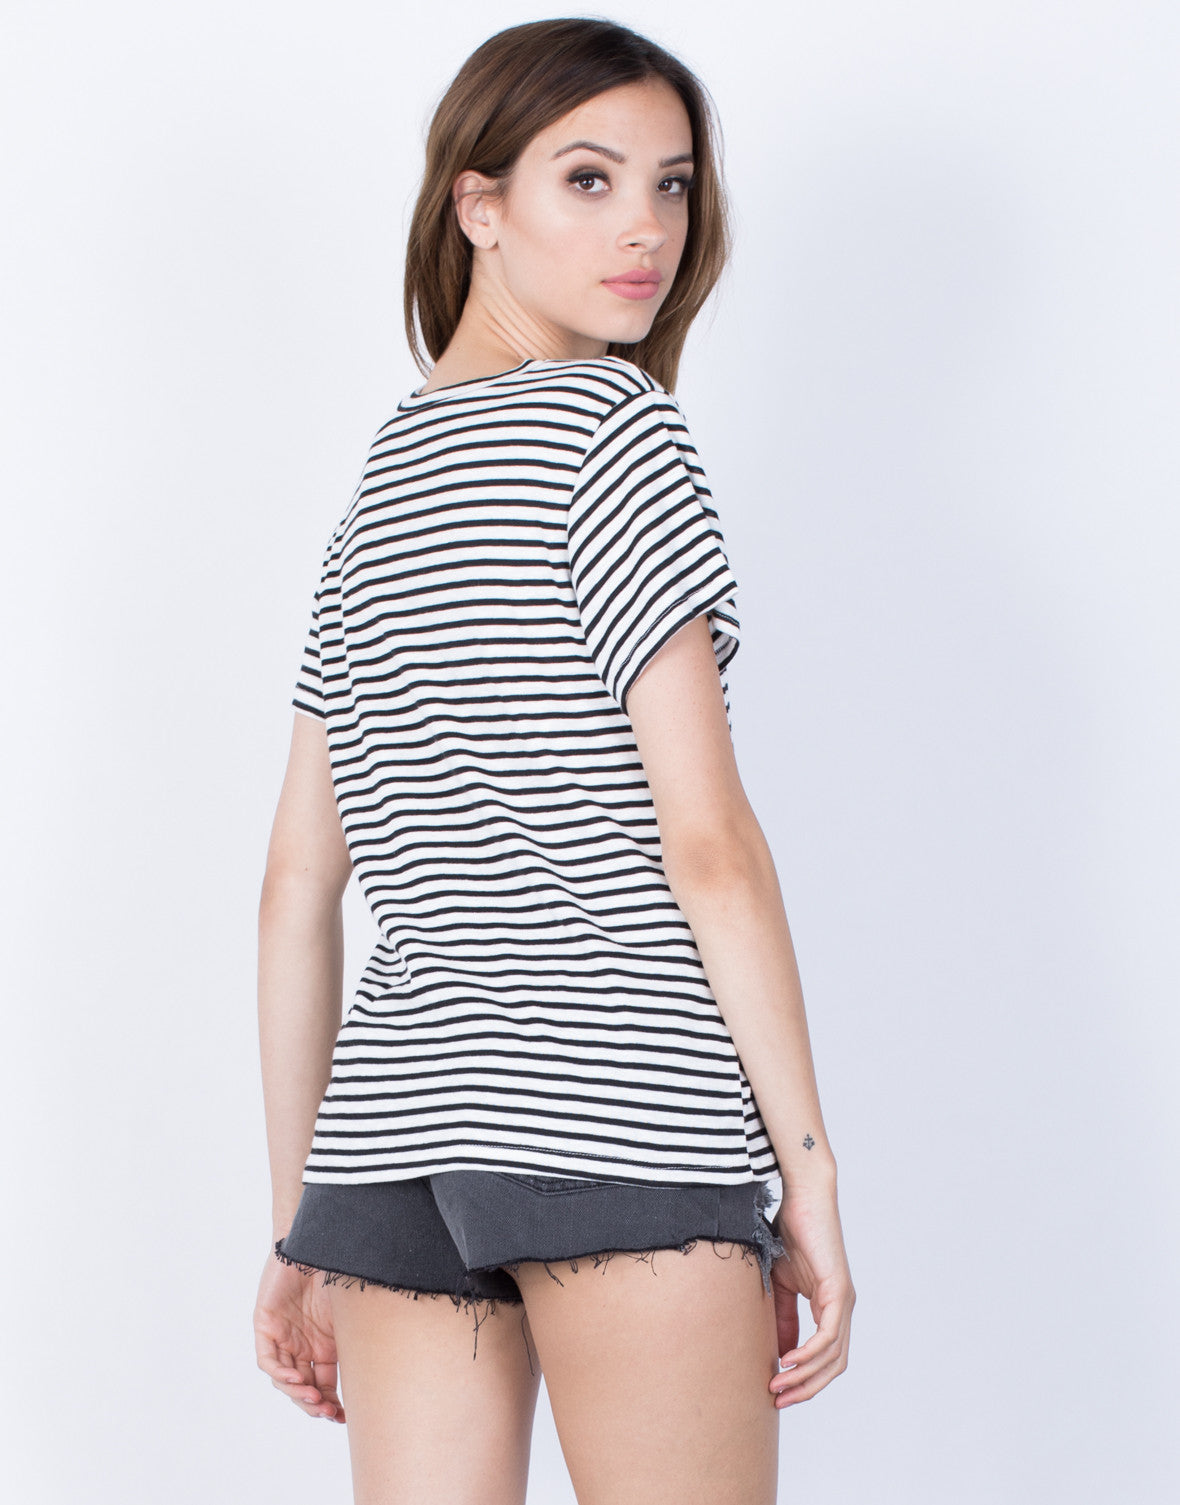 Back View of Casual Striped T-Shirt